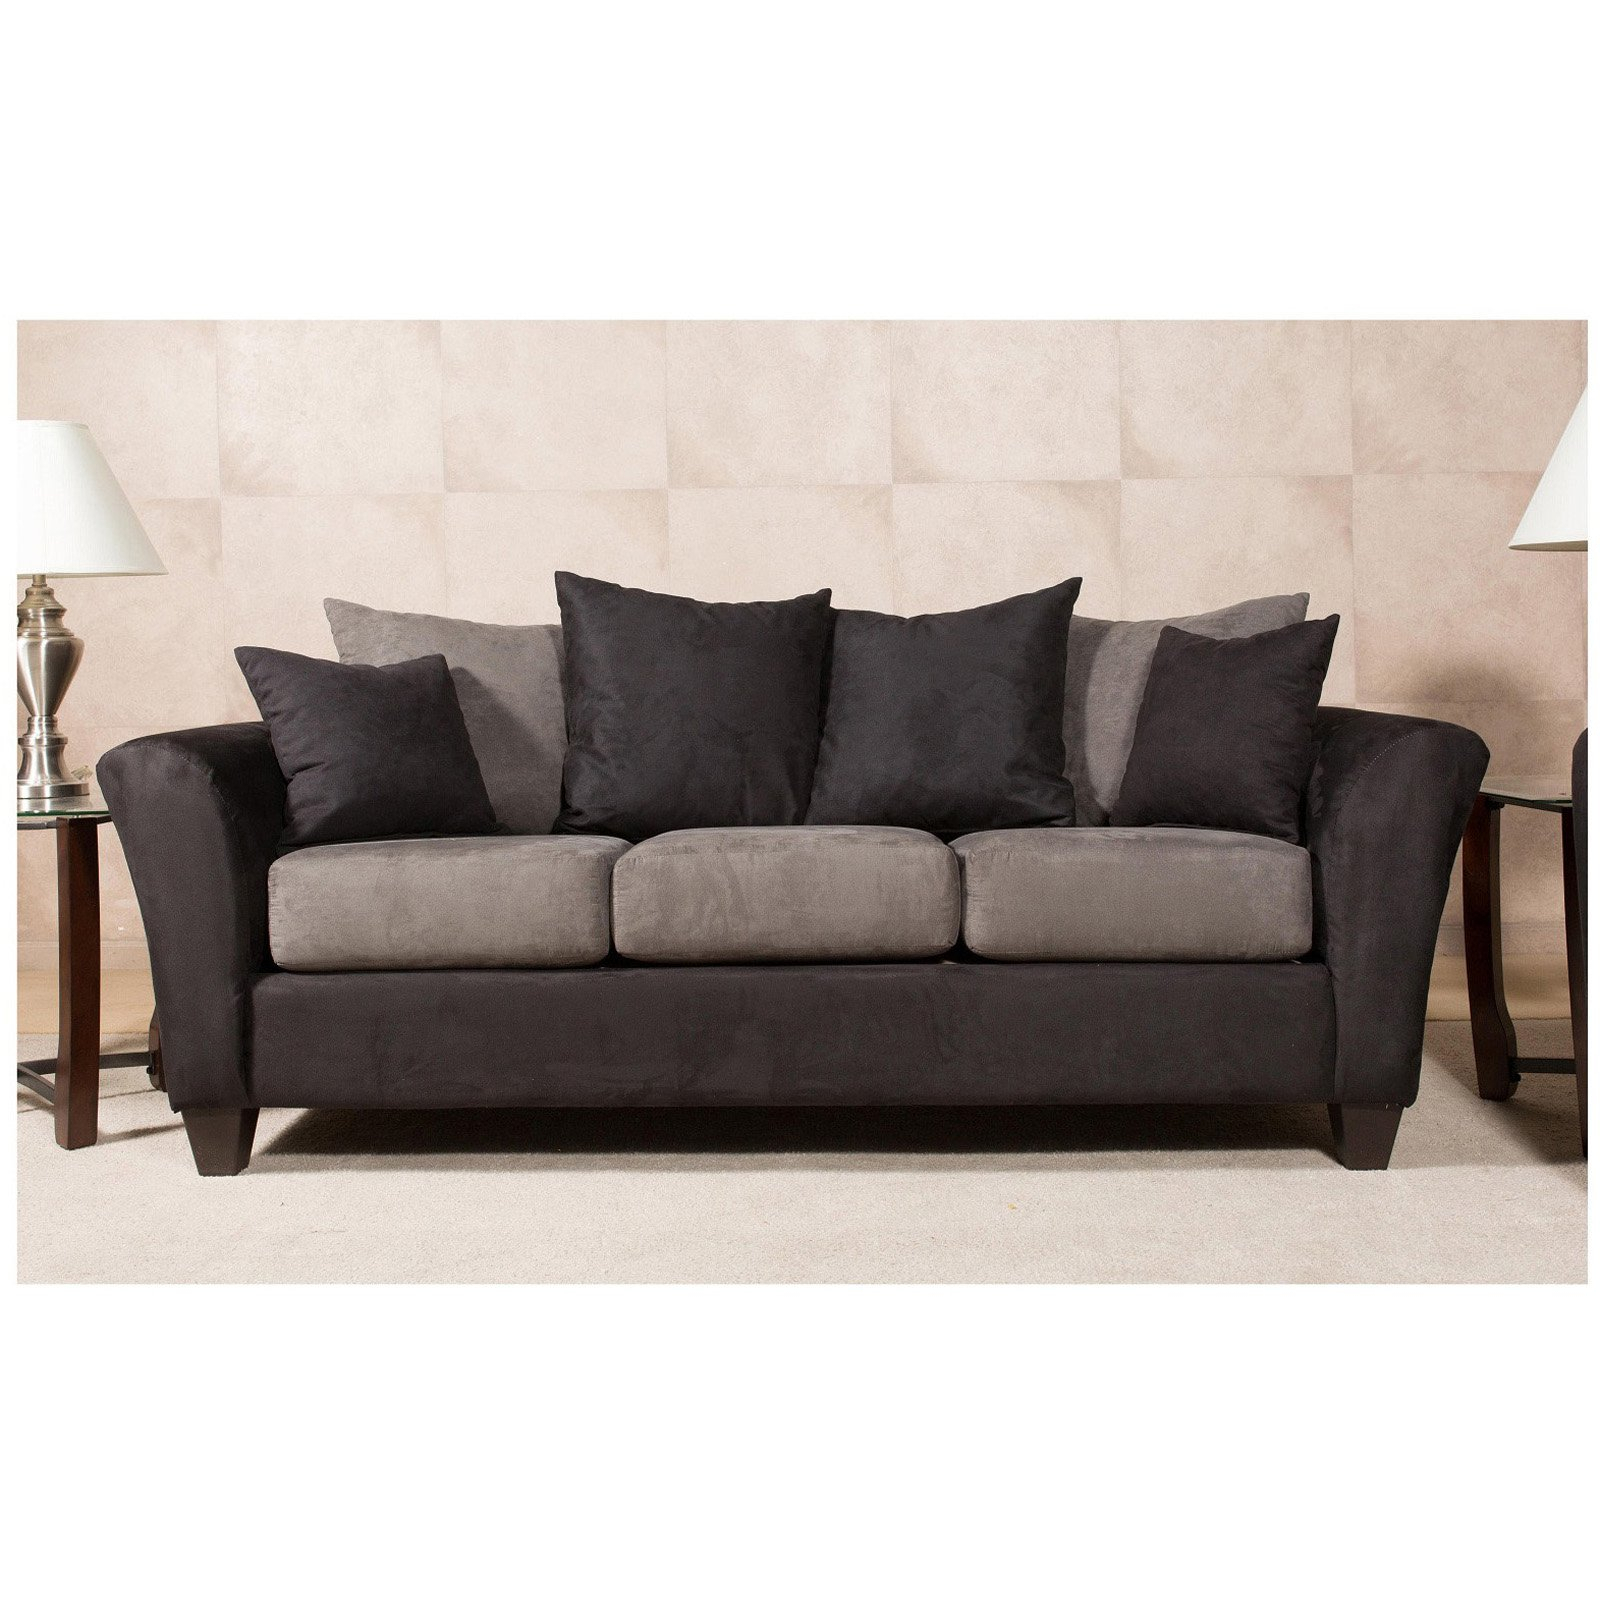 Chelsea Home Mansfield Sofa With 4 Accent Pillows – Walmart Within Mansfield Beige Linen Sofa Chairs (View 15 of 25)